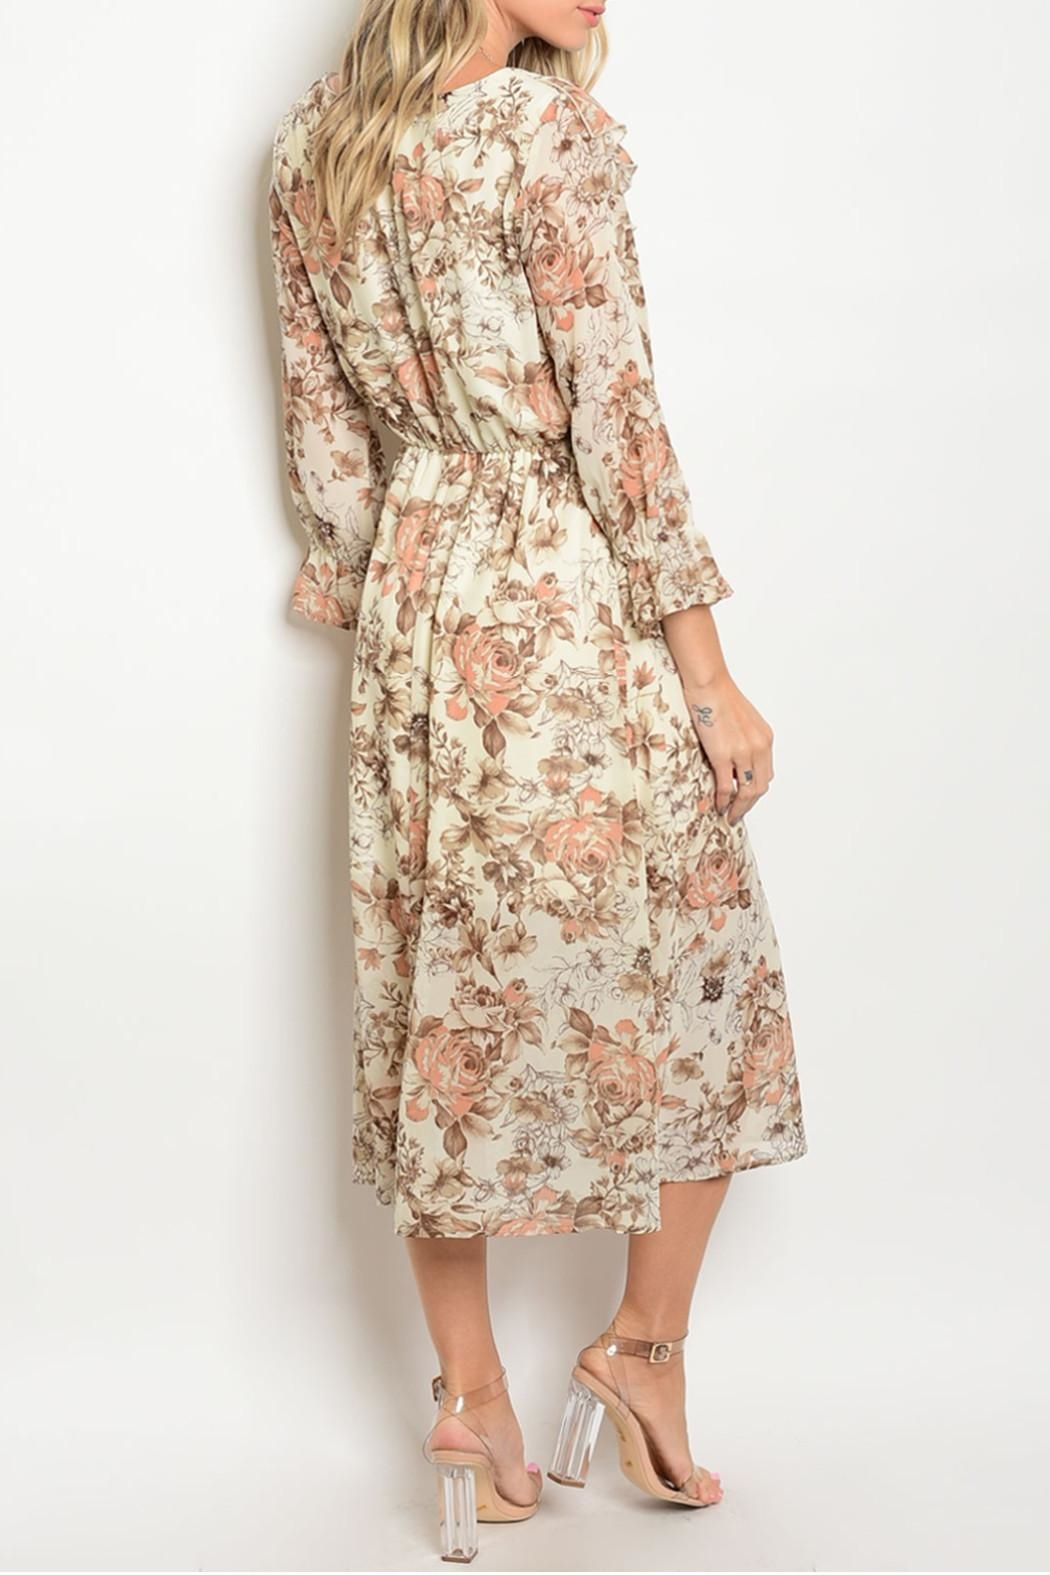 One Story Cream Floral Dress - Front Full Image